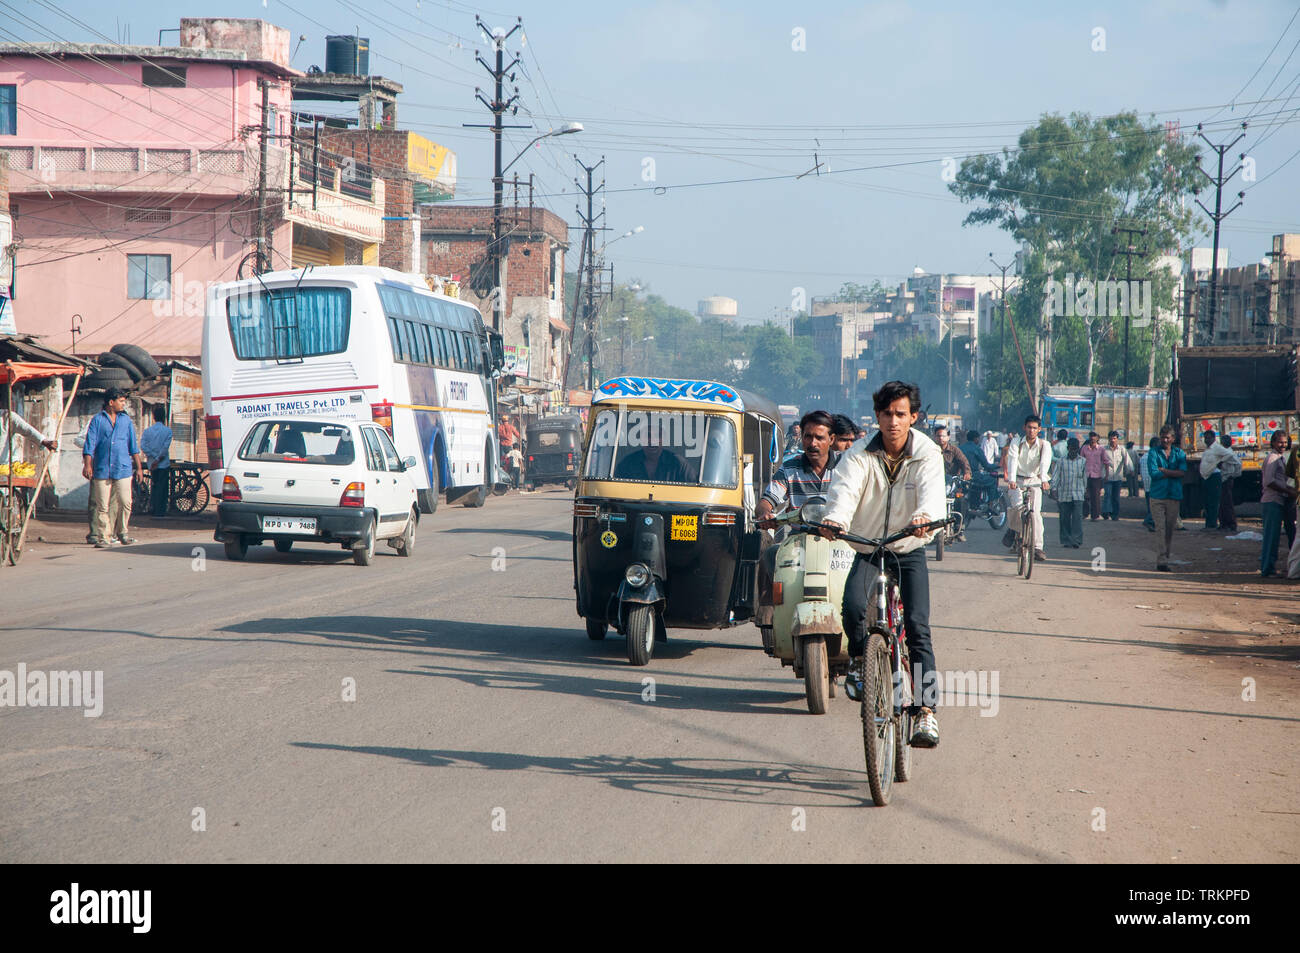 Traffic on the streets of Bhopal in India Stock Photo